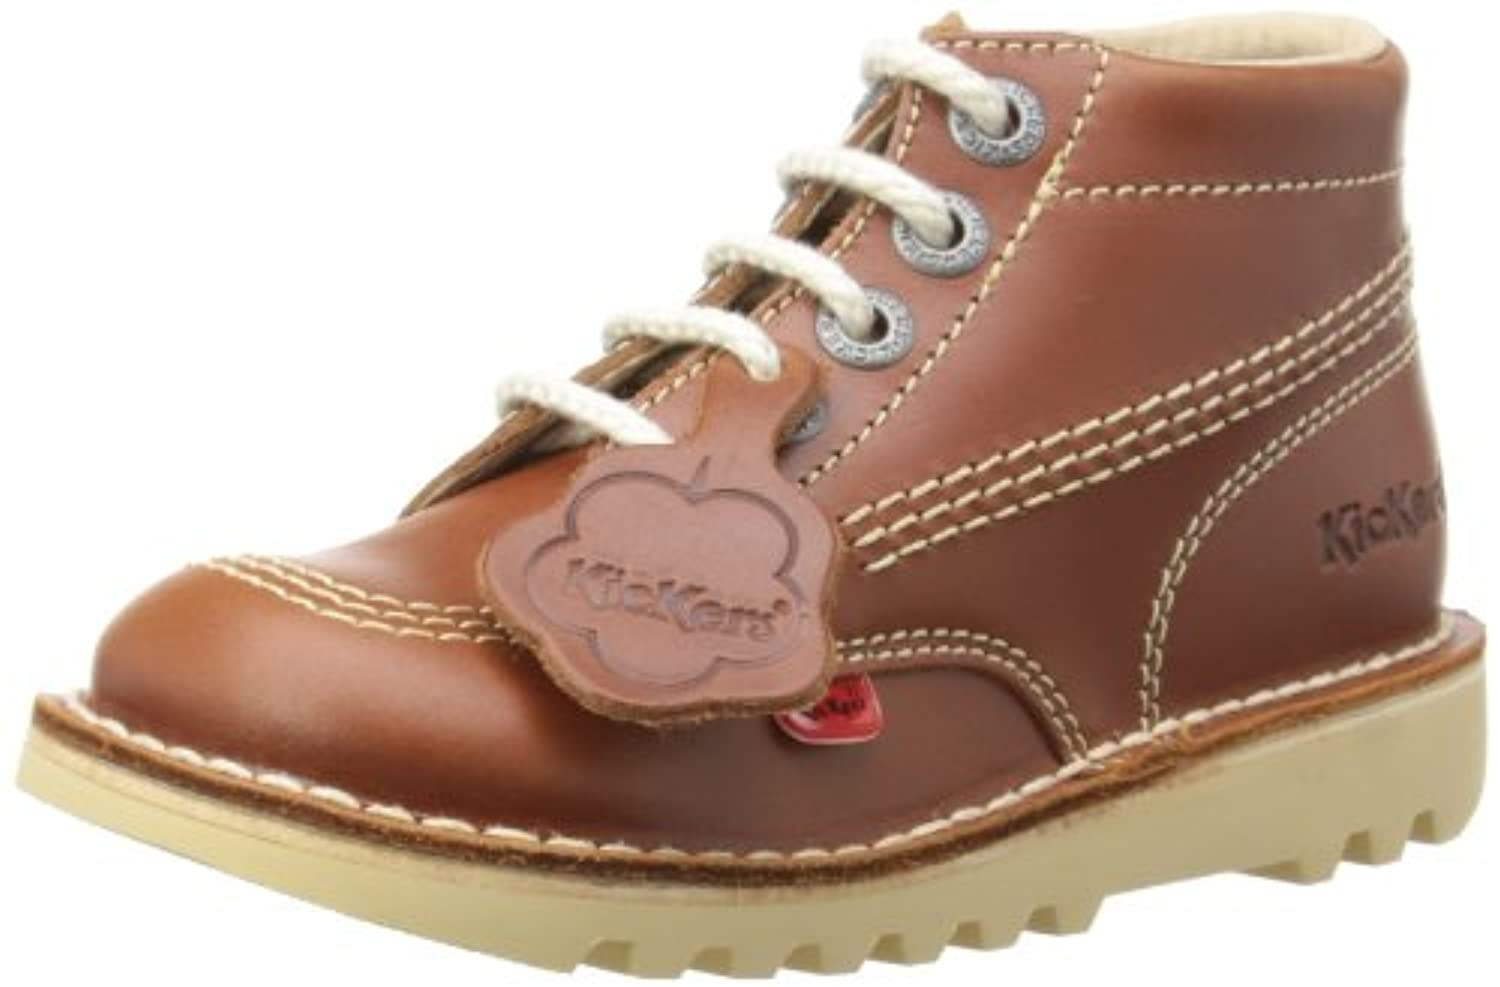 Kickers Unisex - Child Kick Hi Boots - Kids Unisex Girls' Other - Dark Tan, 1 UK (33 EU)